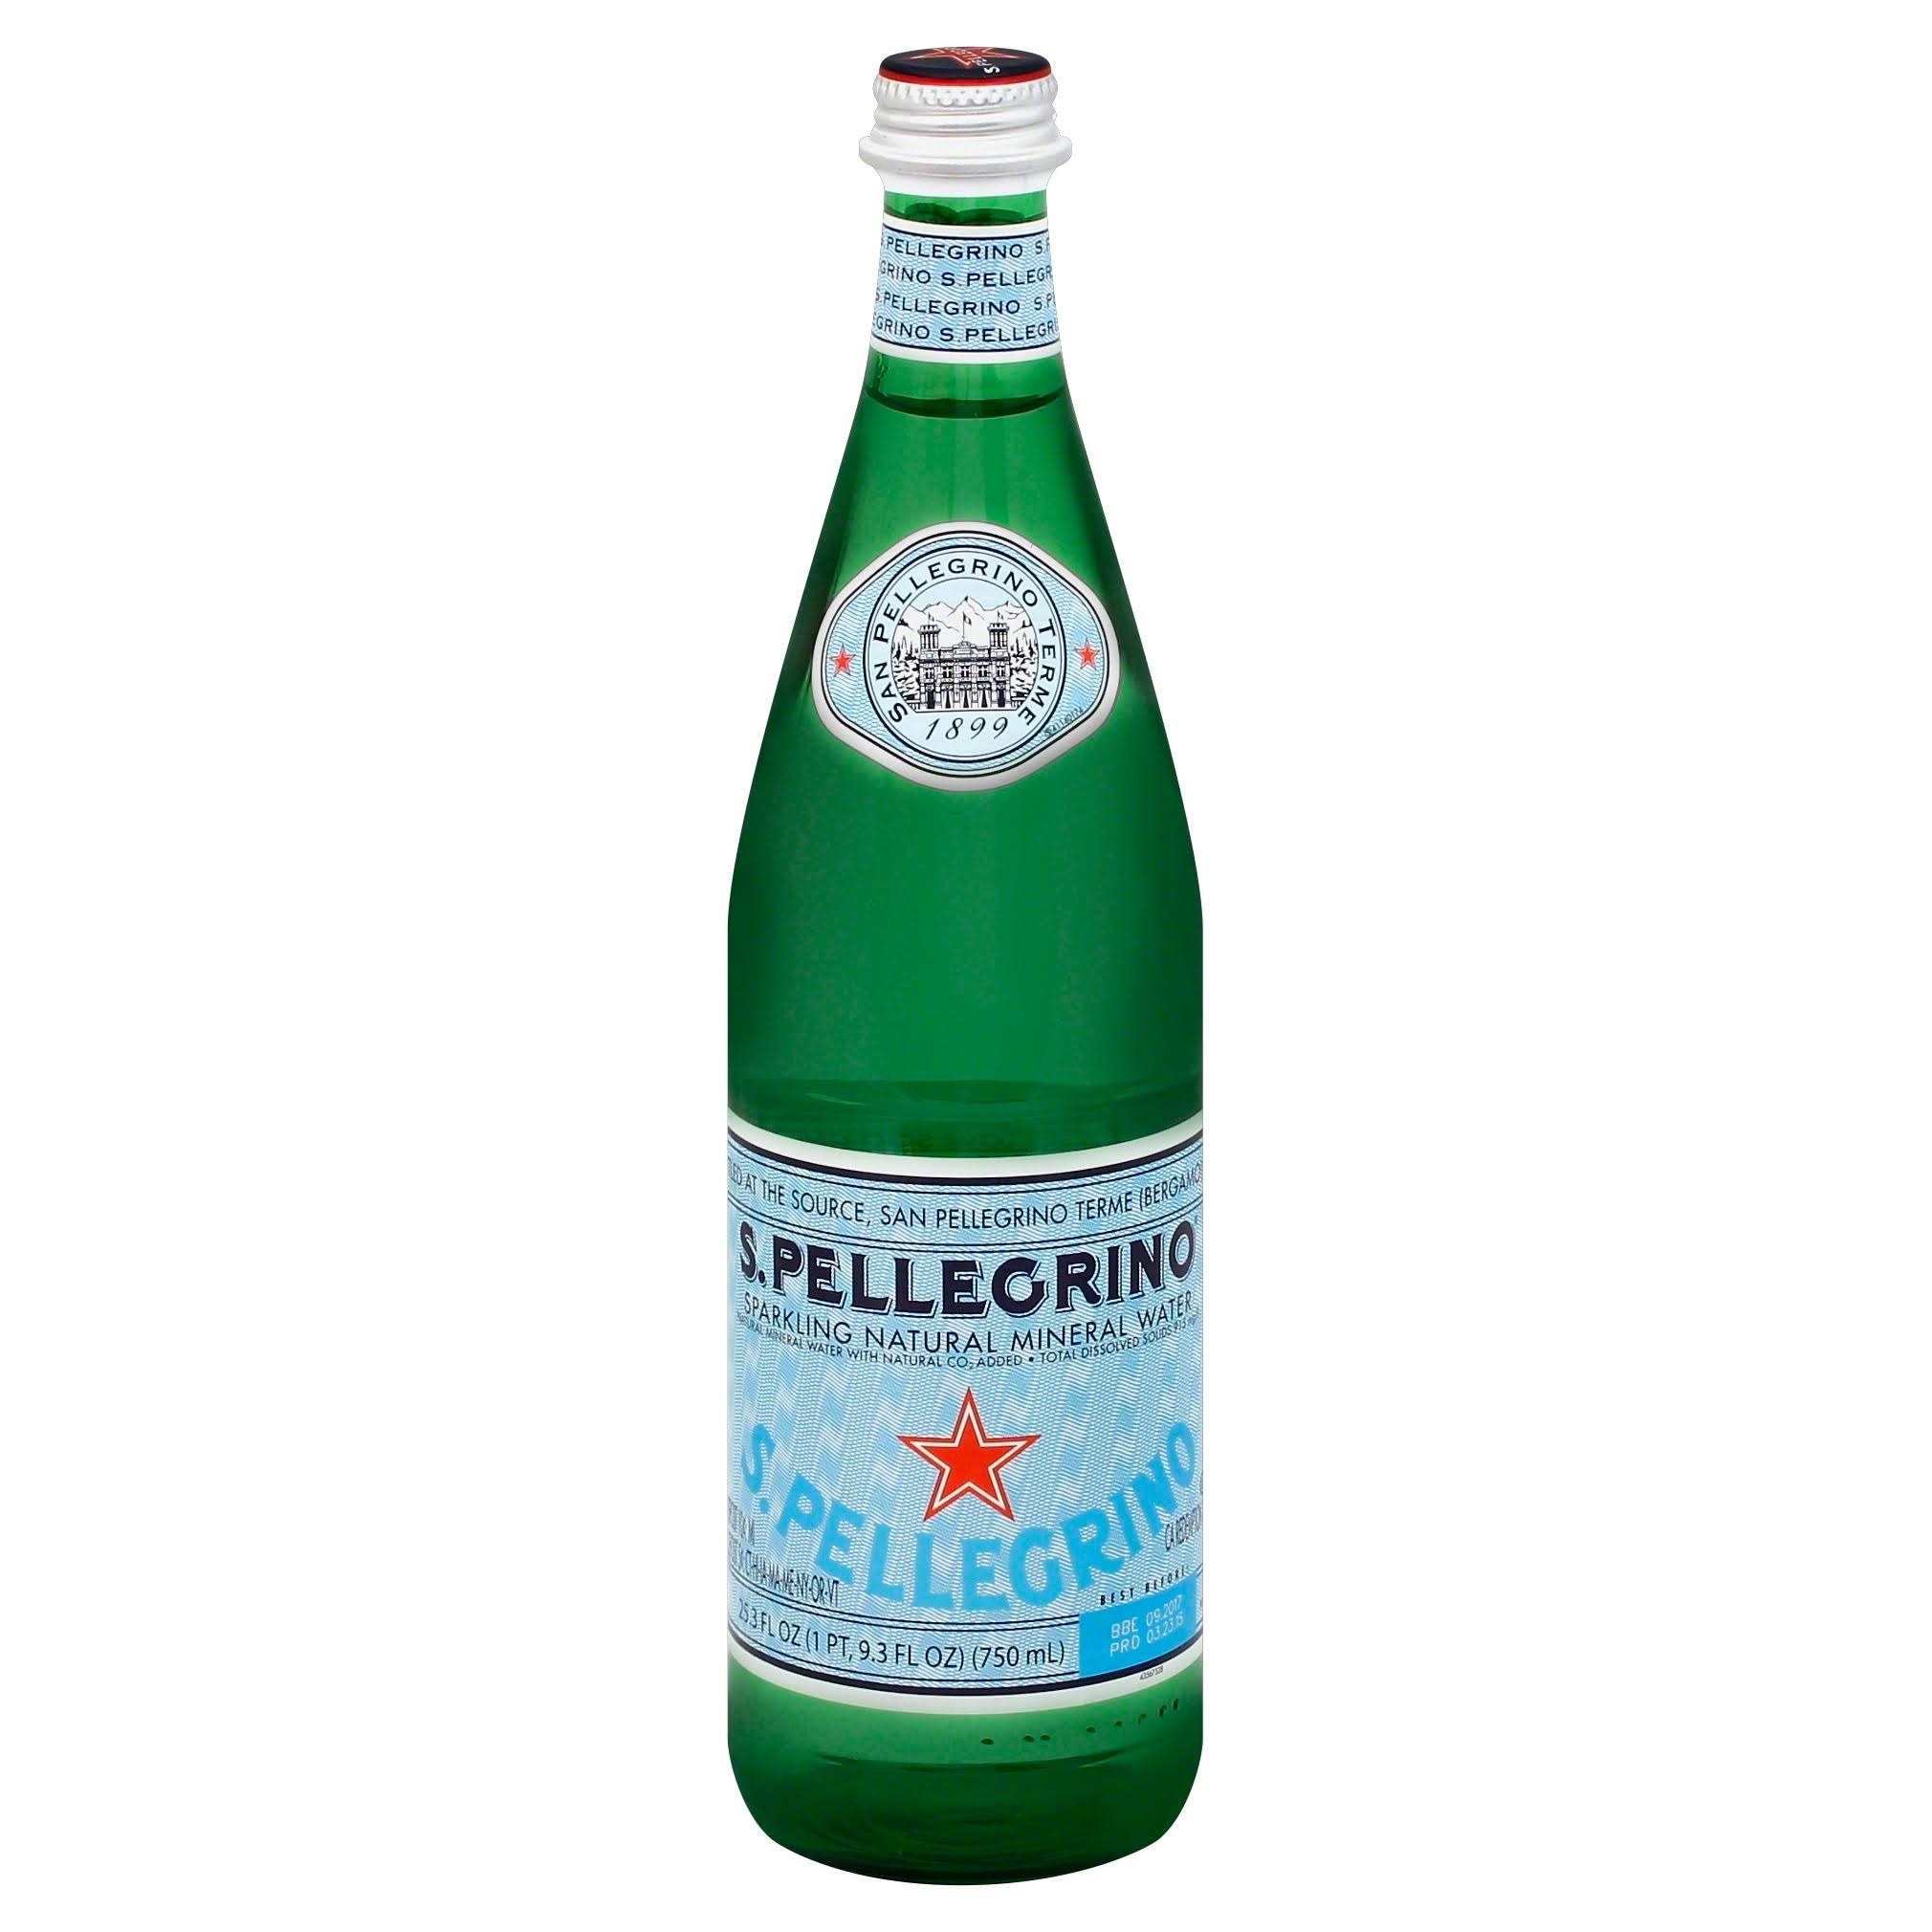 San Pellegrino Sparkling Natural Mineral Water - 750ml